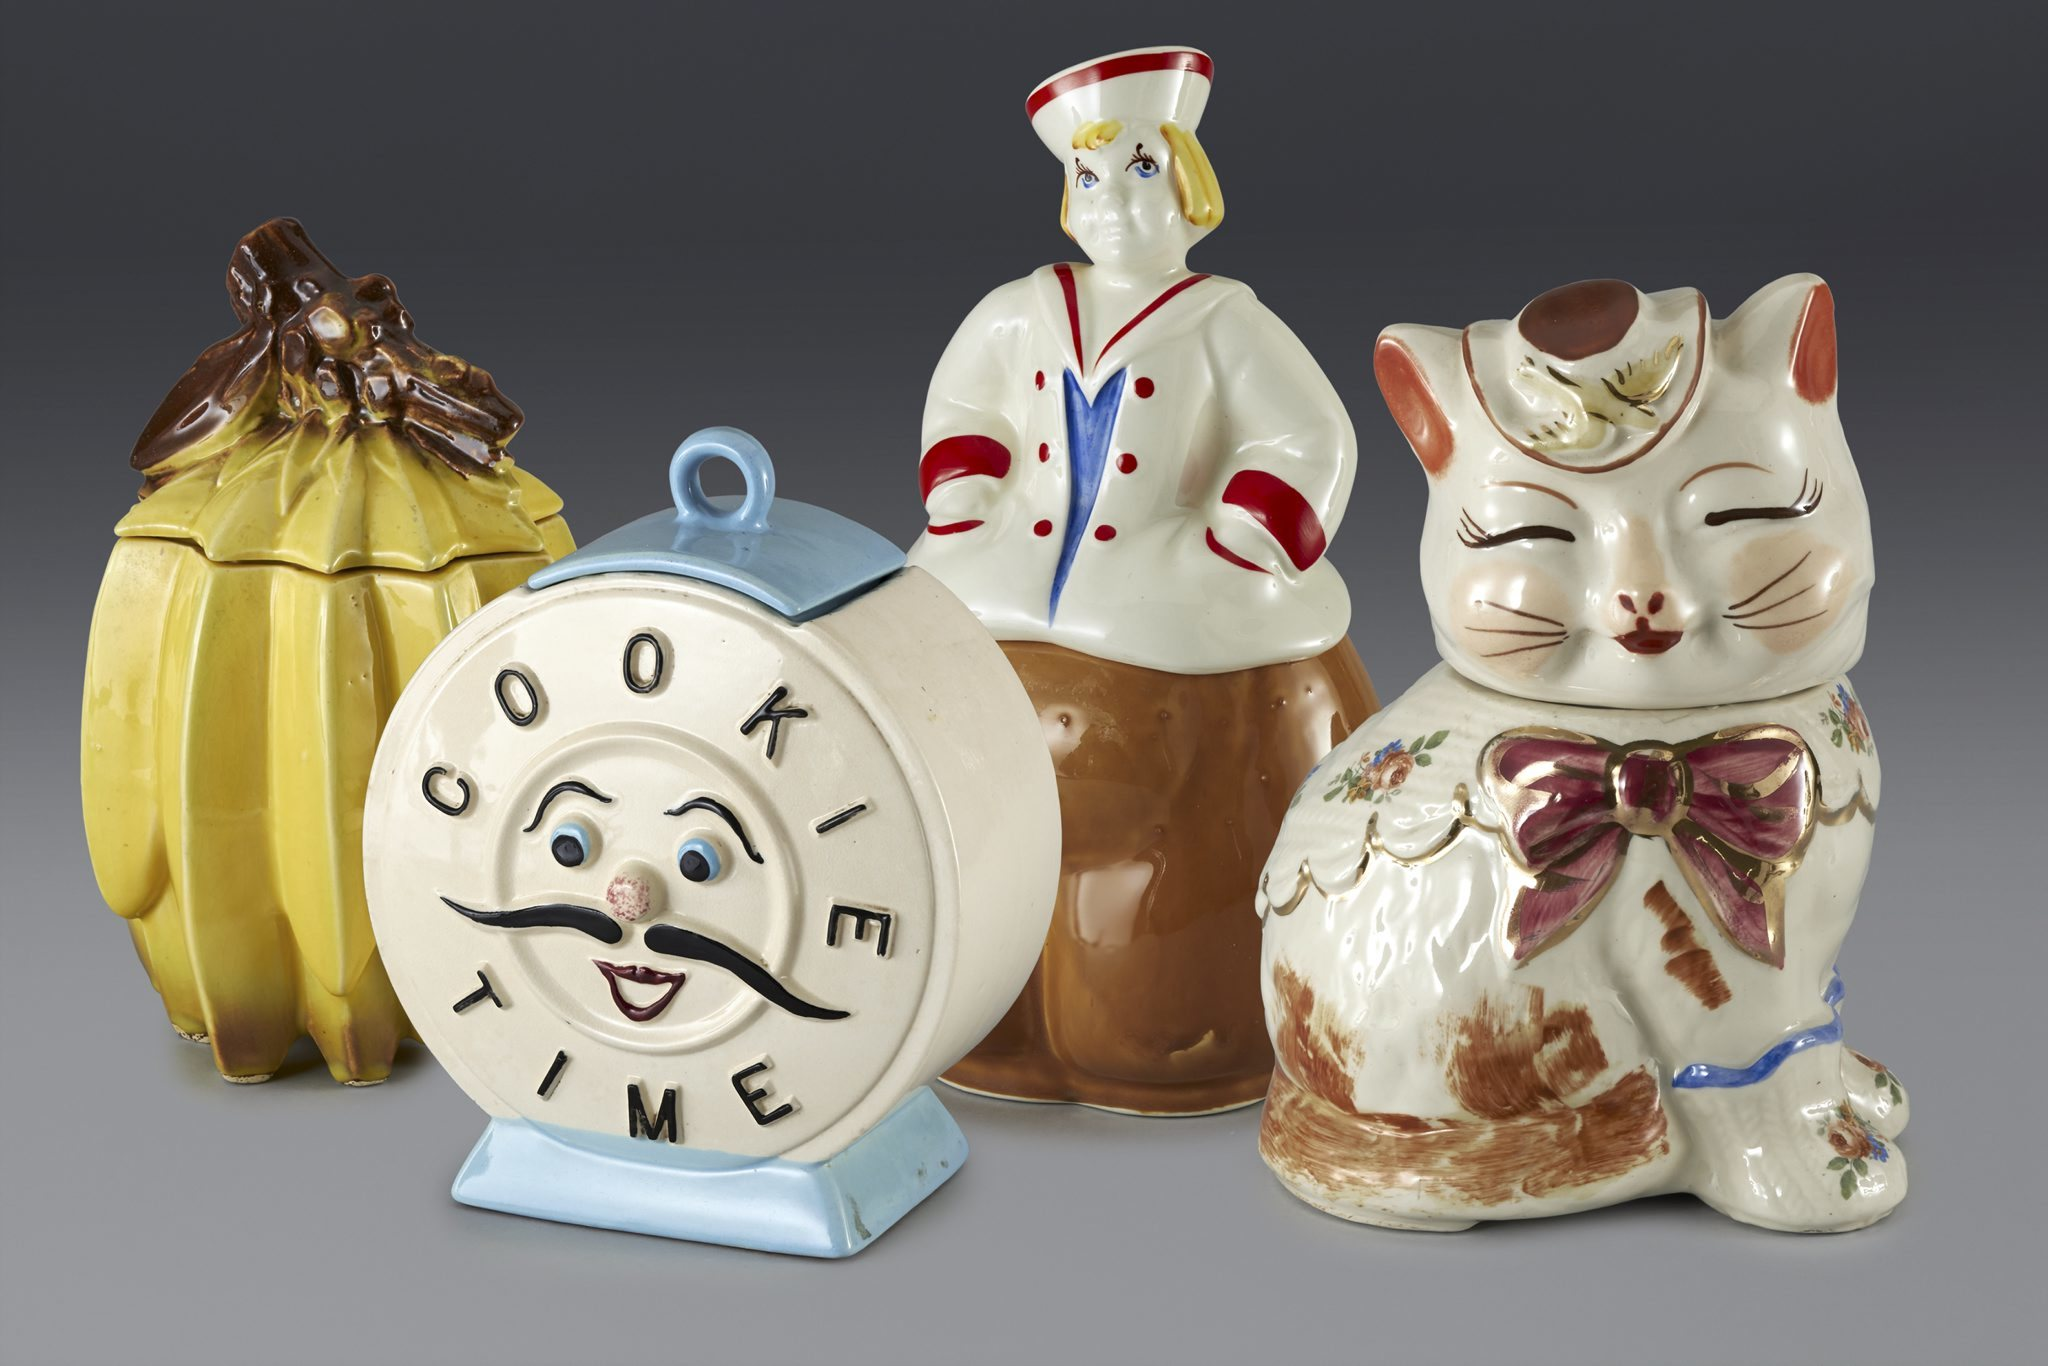 (Cookie jars formerly in the collection of Andy Warhol. Image courtesy the Movado Group)